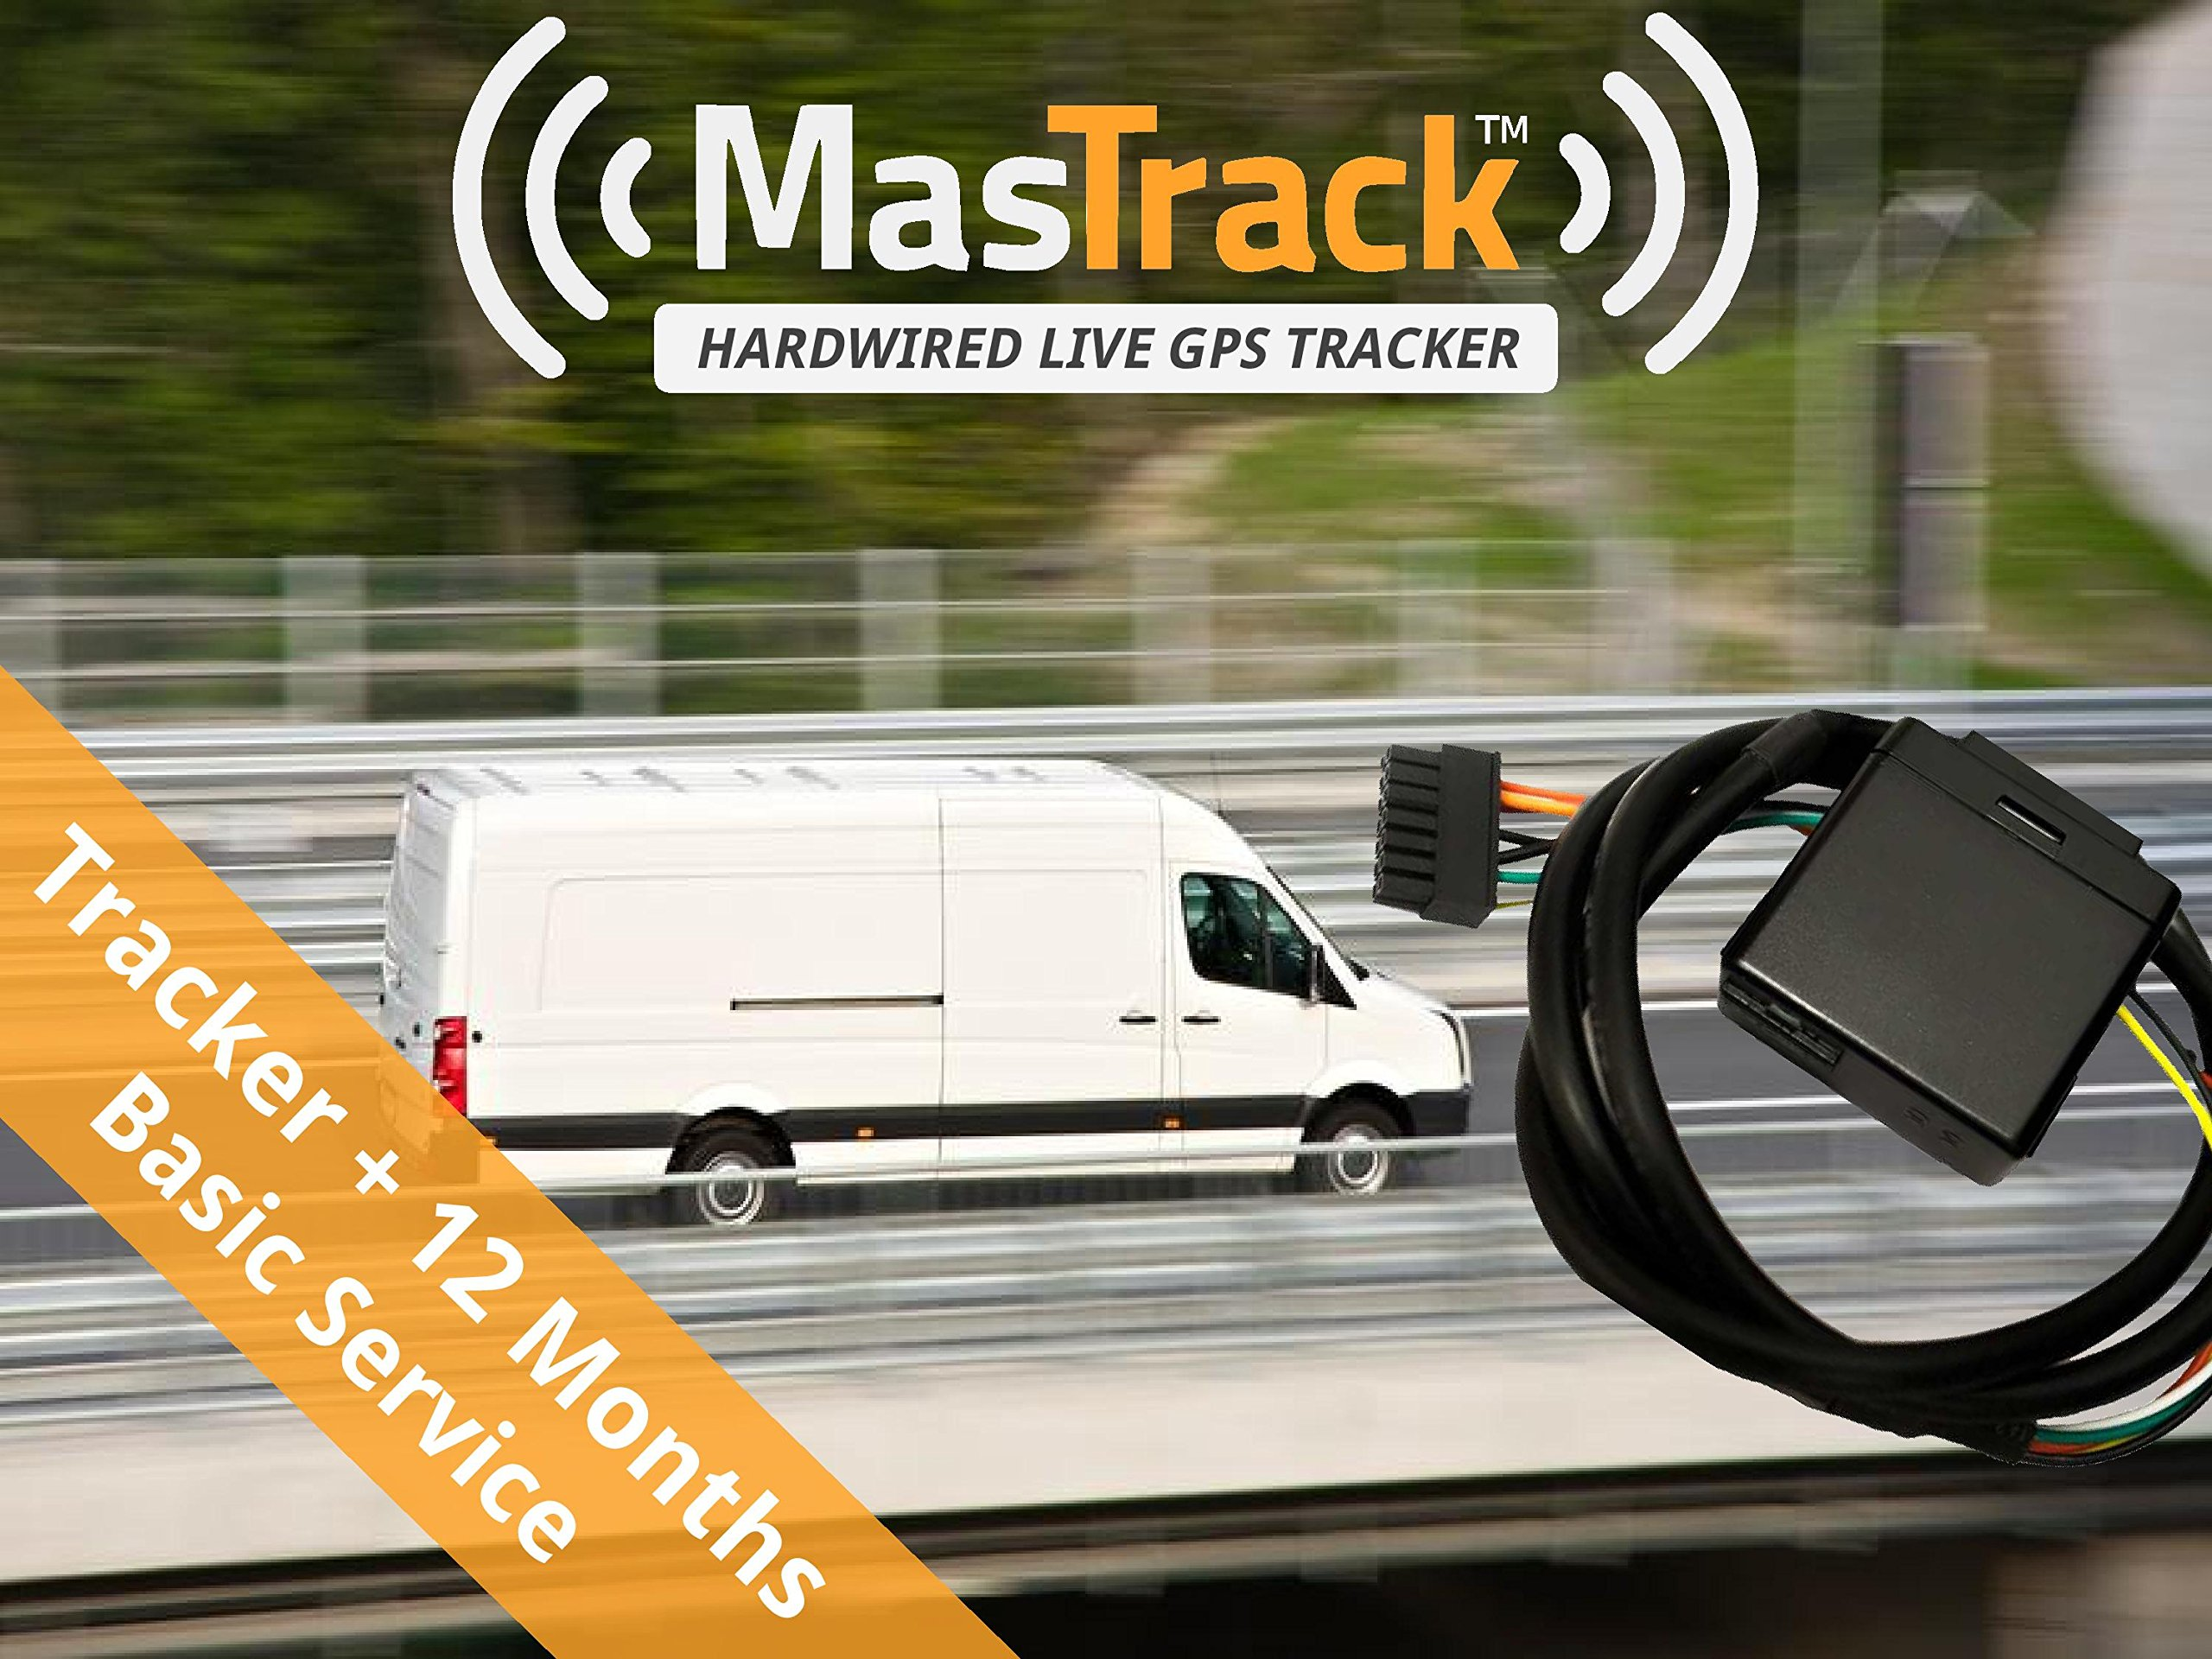 MasTrack Hardwired Real Time GPS Vehicle Tracker includes 12 Months of Basic Service with Theft Recovery